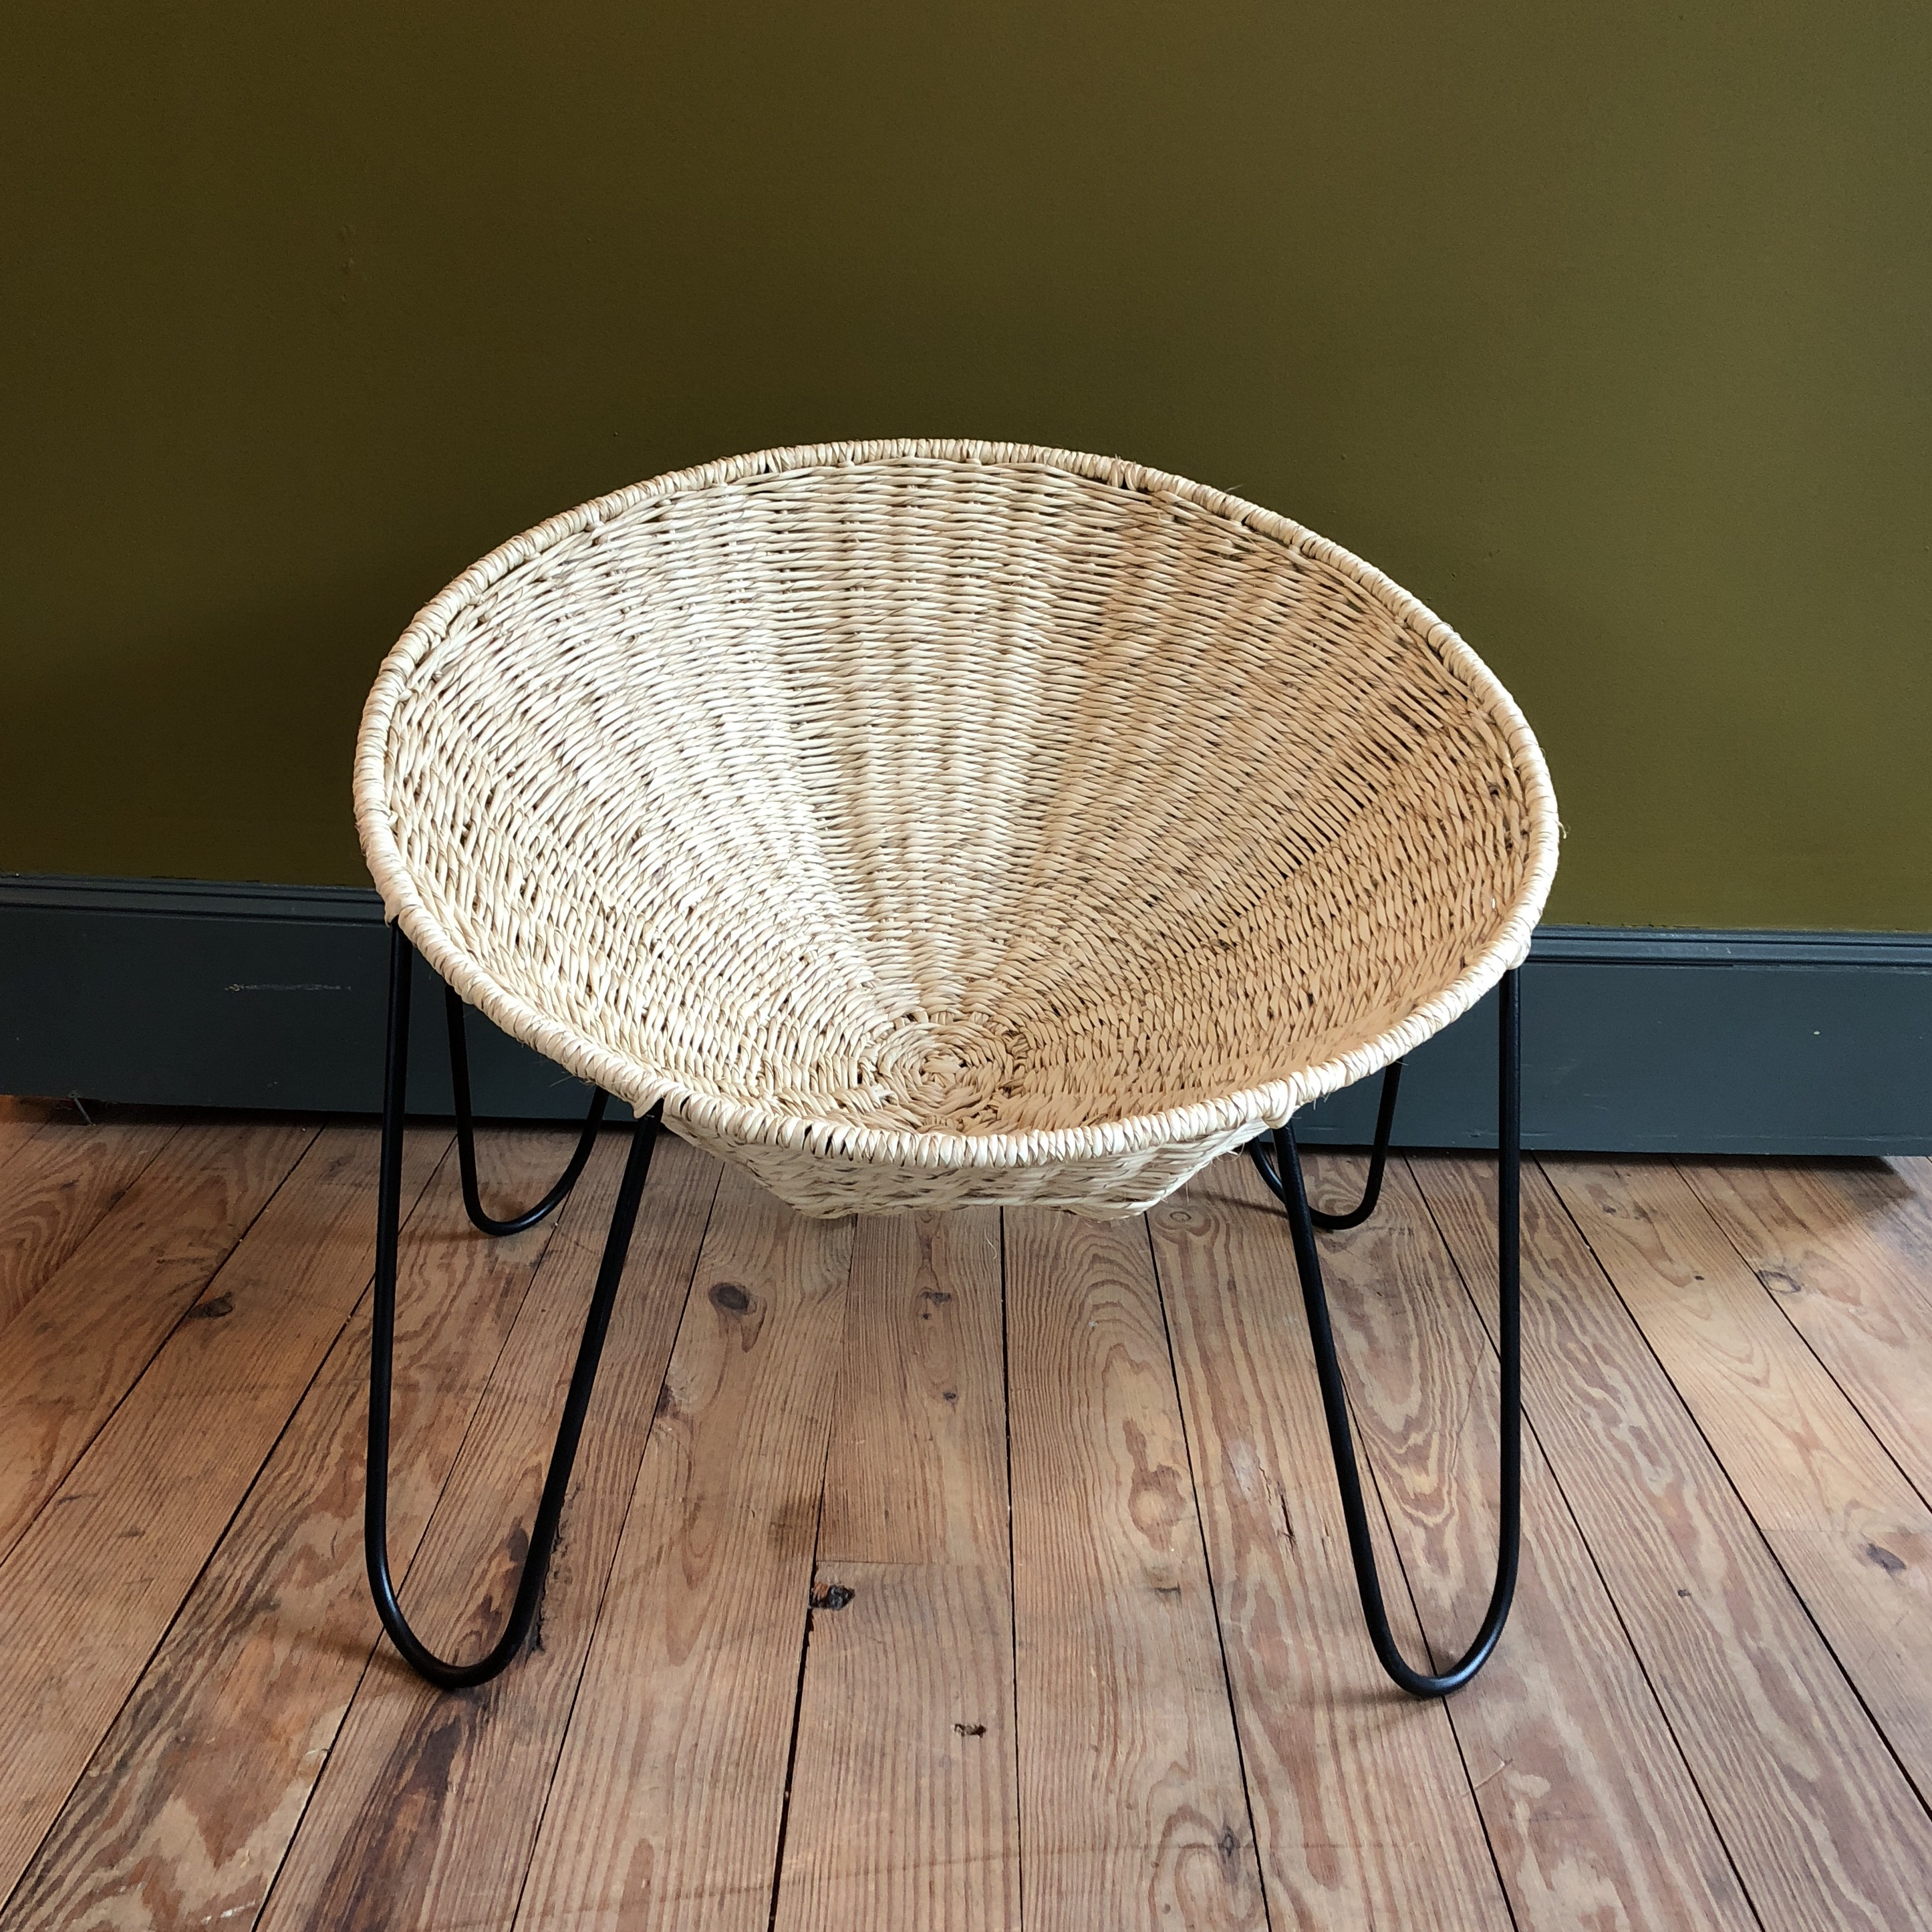 woven metal furniture. Mexa Woven Palm Leaf And Metal Circle Lounge Chairs - A Pair Image 2 Of Furniture